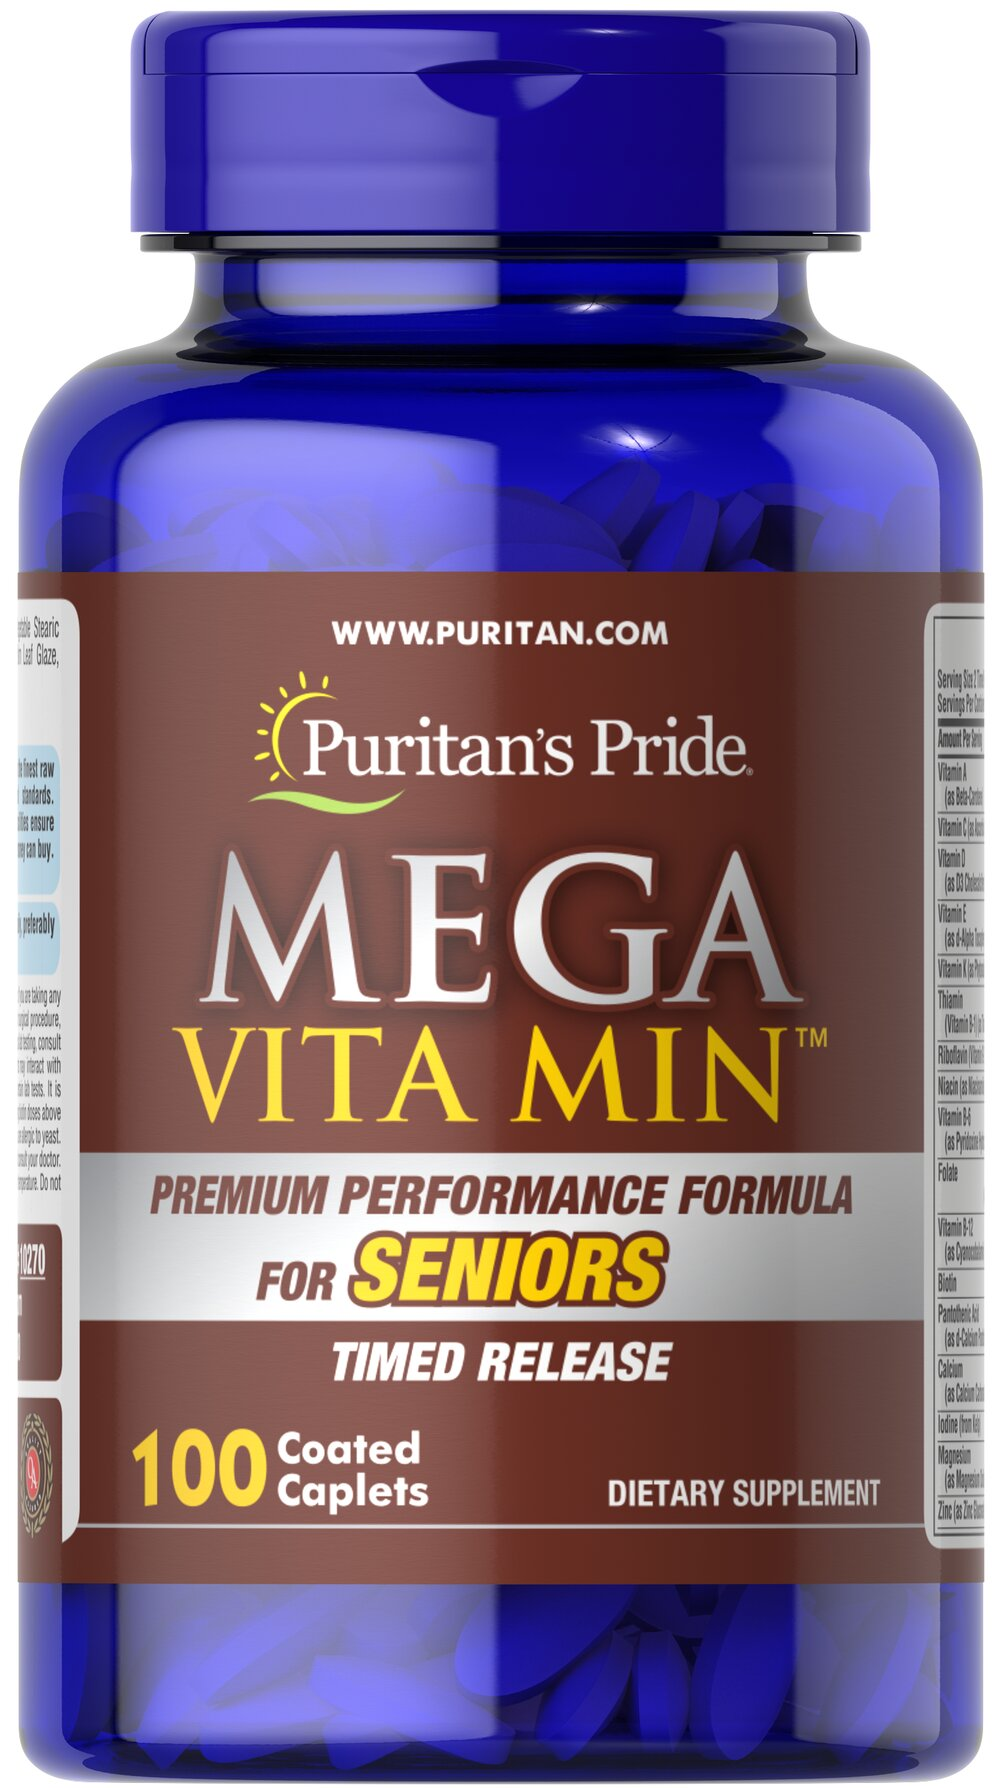 Mega Vita Min™ Multivitamin for Seniors Timed Release <p>Mega Vita Min™ for Seniors combines a bounty of vitamins and minerals, with a cornucopia of herbs to create a specialized formula specifically designed for maturing adults.  Start reaping the benefits of a timed-release vitamin geared for your needs.</p> 100 Coated Caplets  $21.99